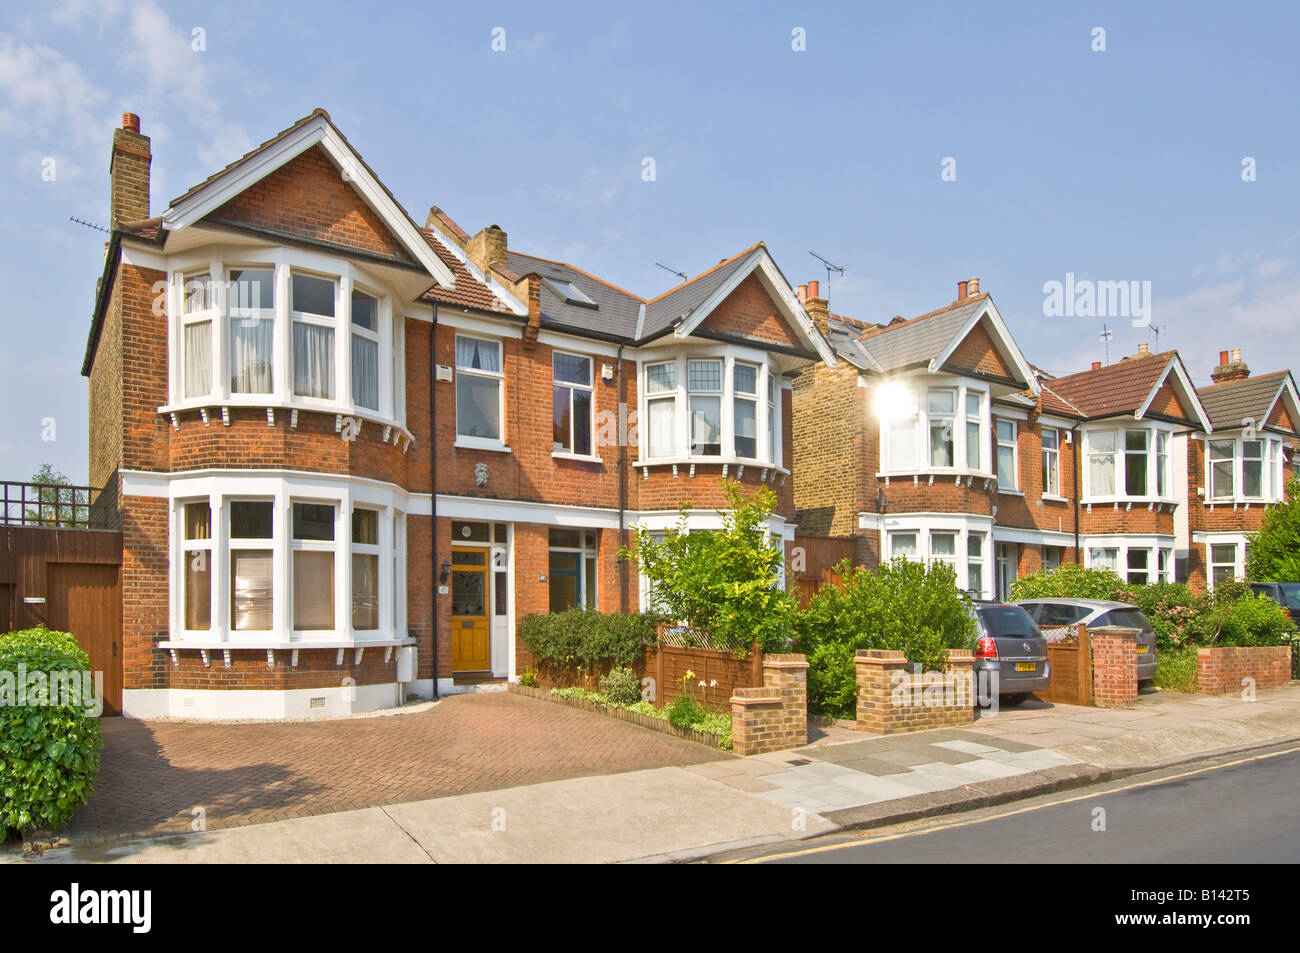 A Row Of Typical 3 Bed Semi Detached Victorian/Edwardian Houses In  Suburbia.